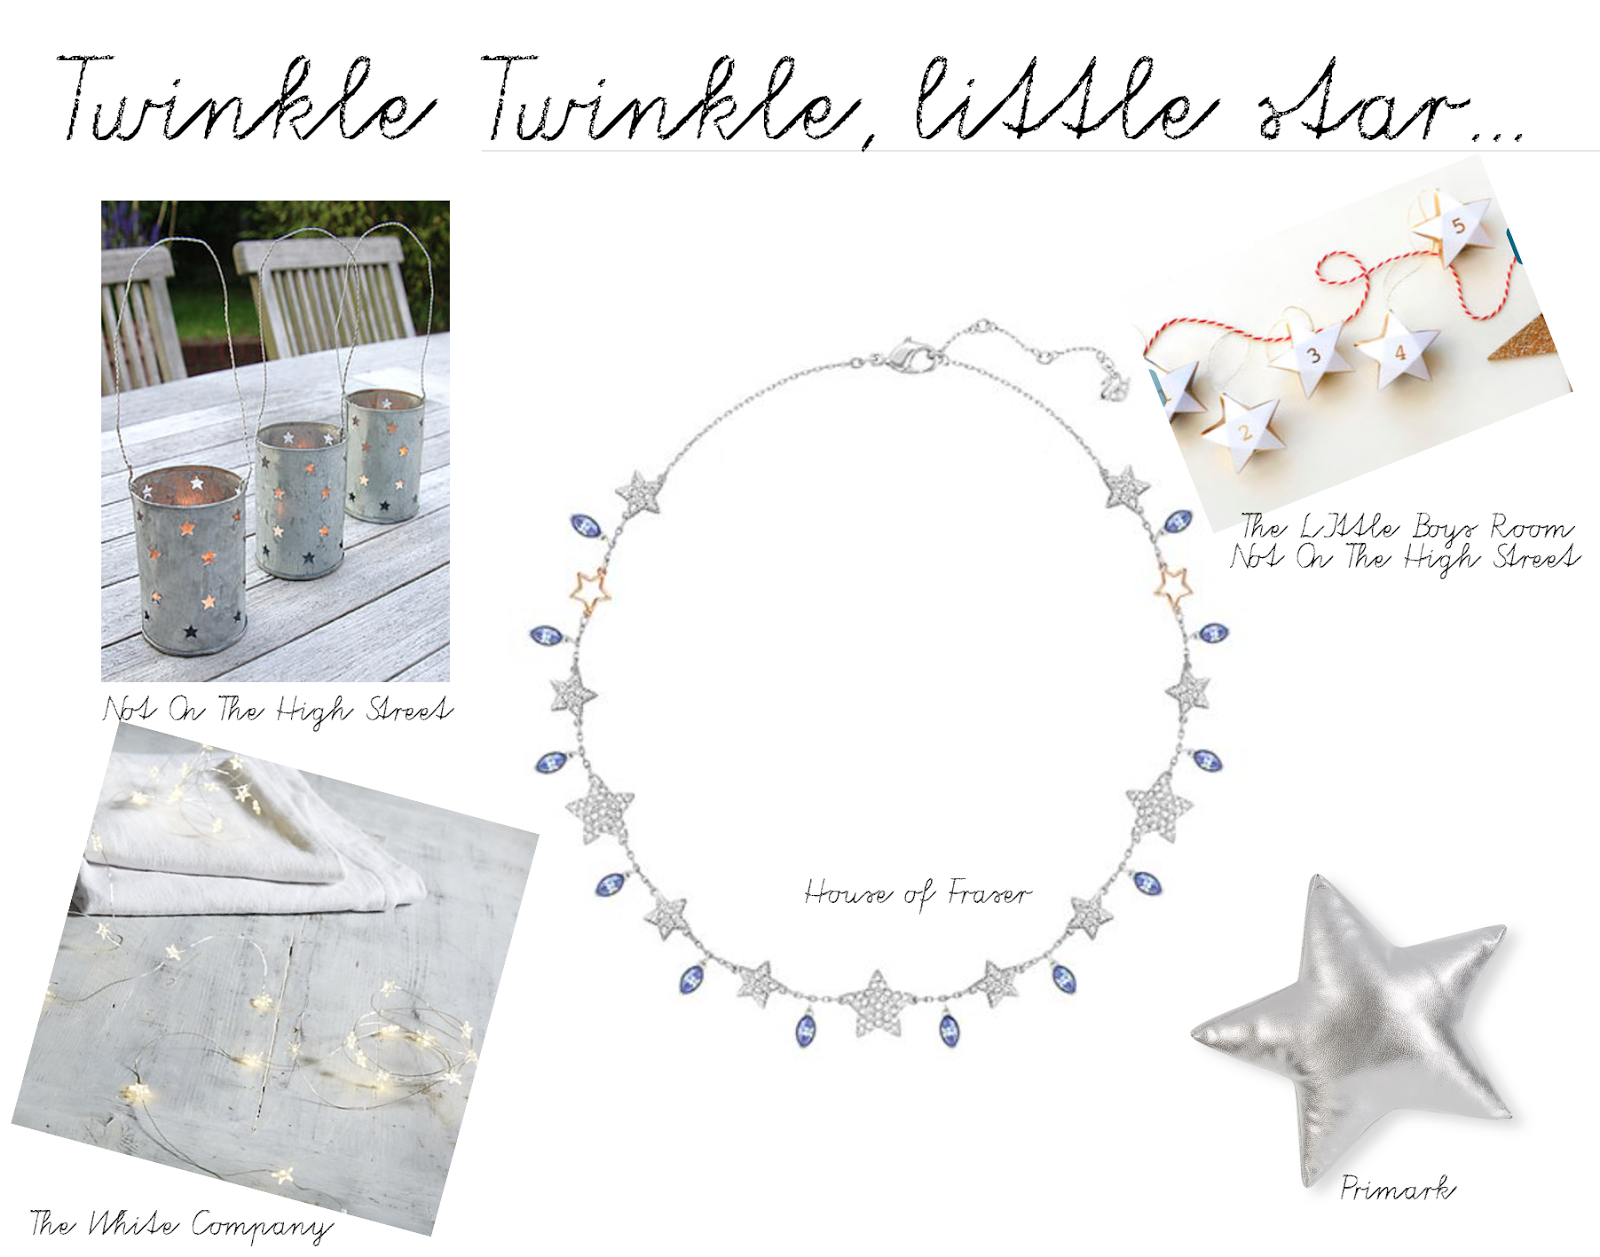 TWINKLE, TWINKLE LITTLE STAR…ON MY CHRISTMAS WISH LIST, YOU ARE